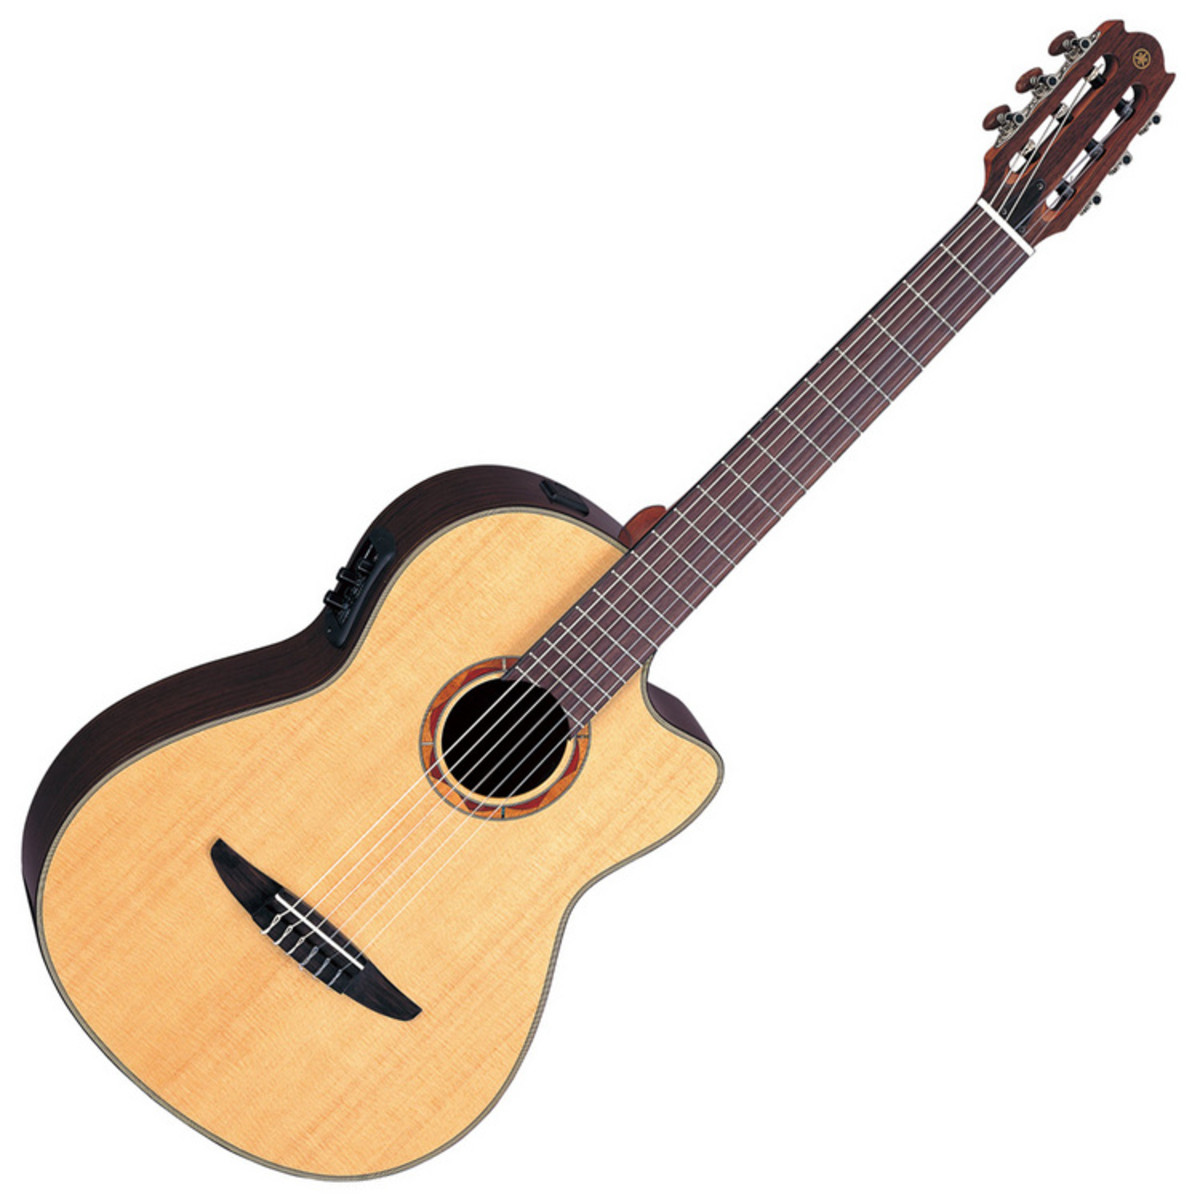 yamaha ncx900r guitar compare prices at foundem